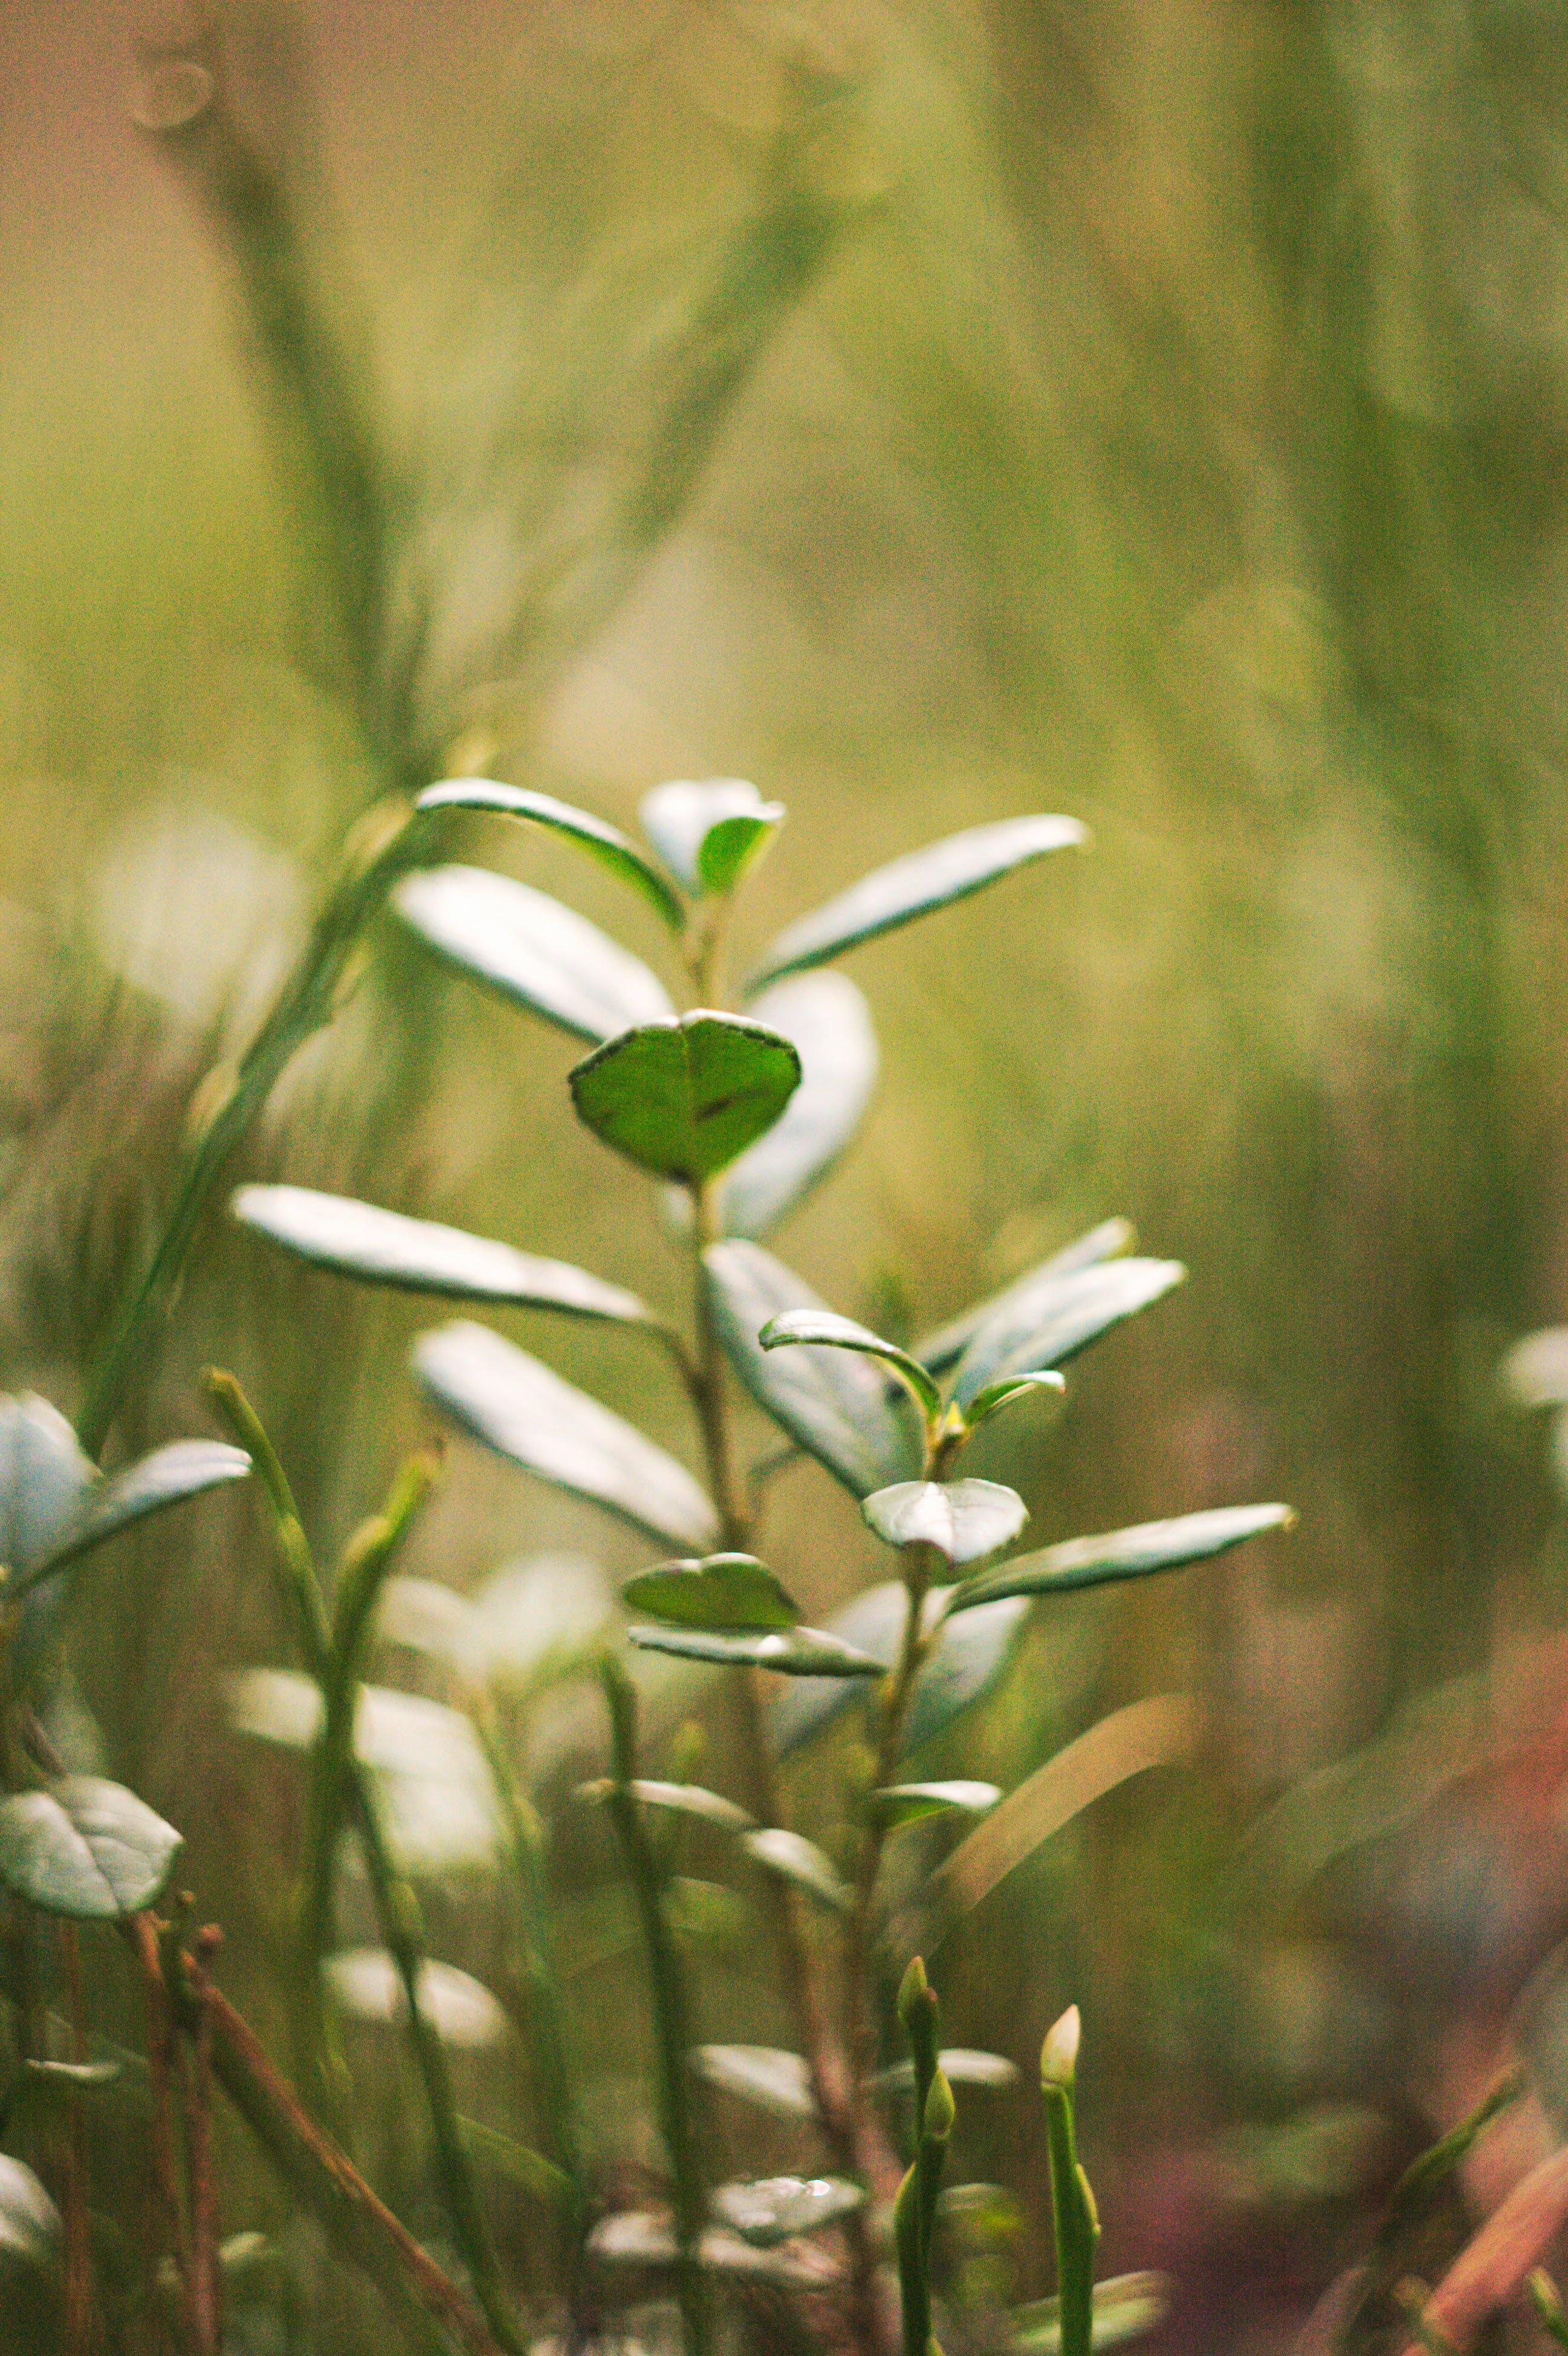 Free stock photo of blurry, grass, green